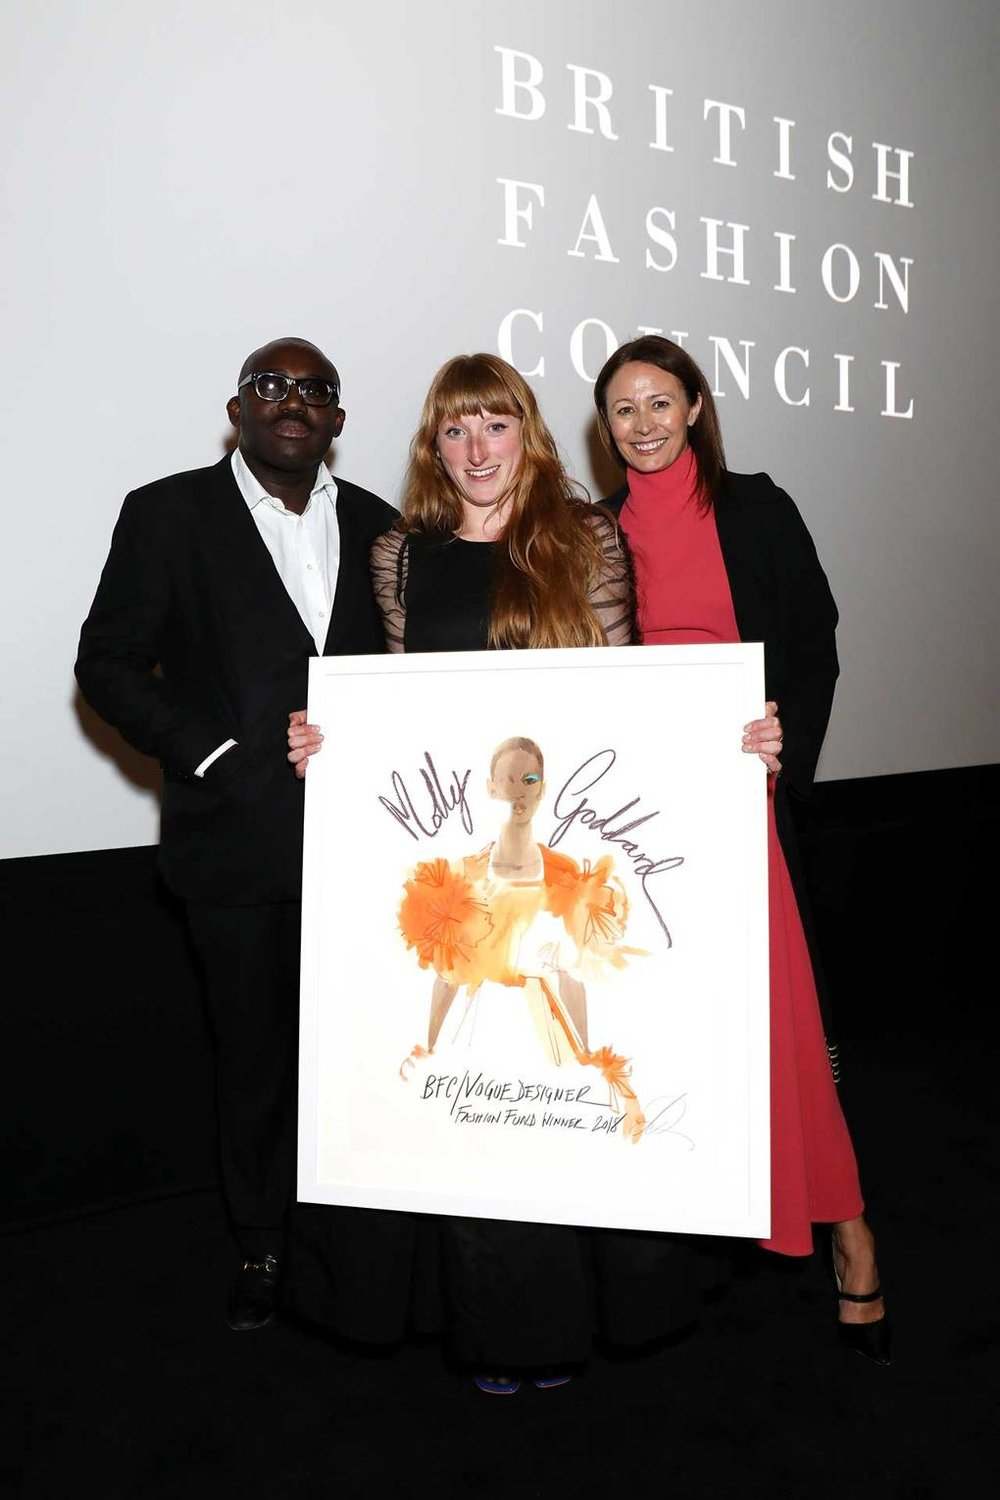 Award-winner Molly Goddard with British Vogue's editor-in-chief Edward Enninful and the BFC's Chief Executive Caroline Rush / Photo: BFC